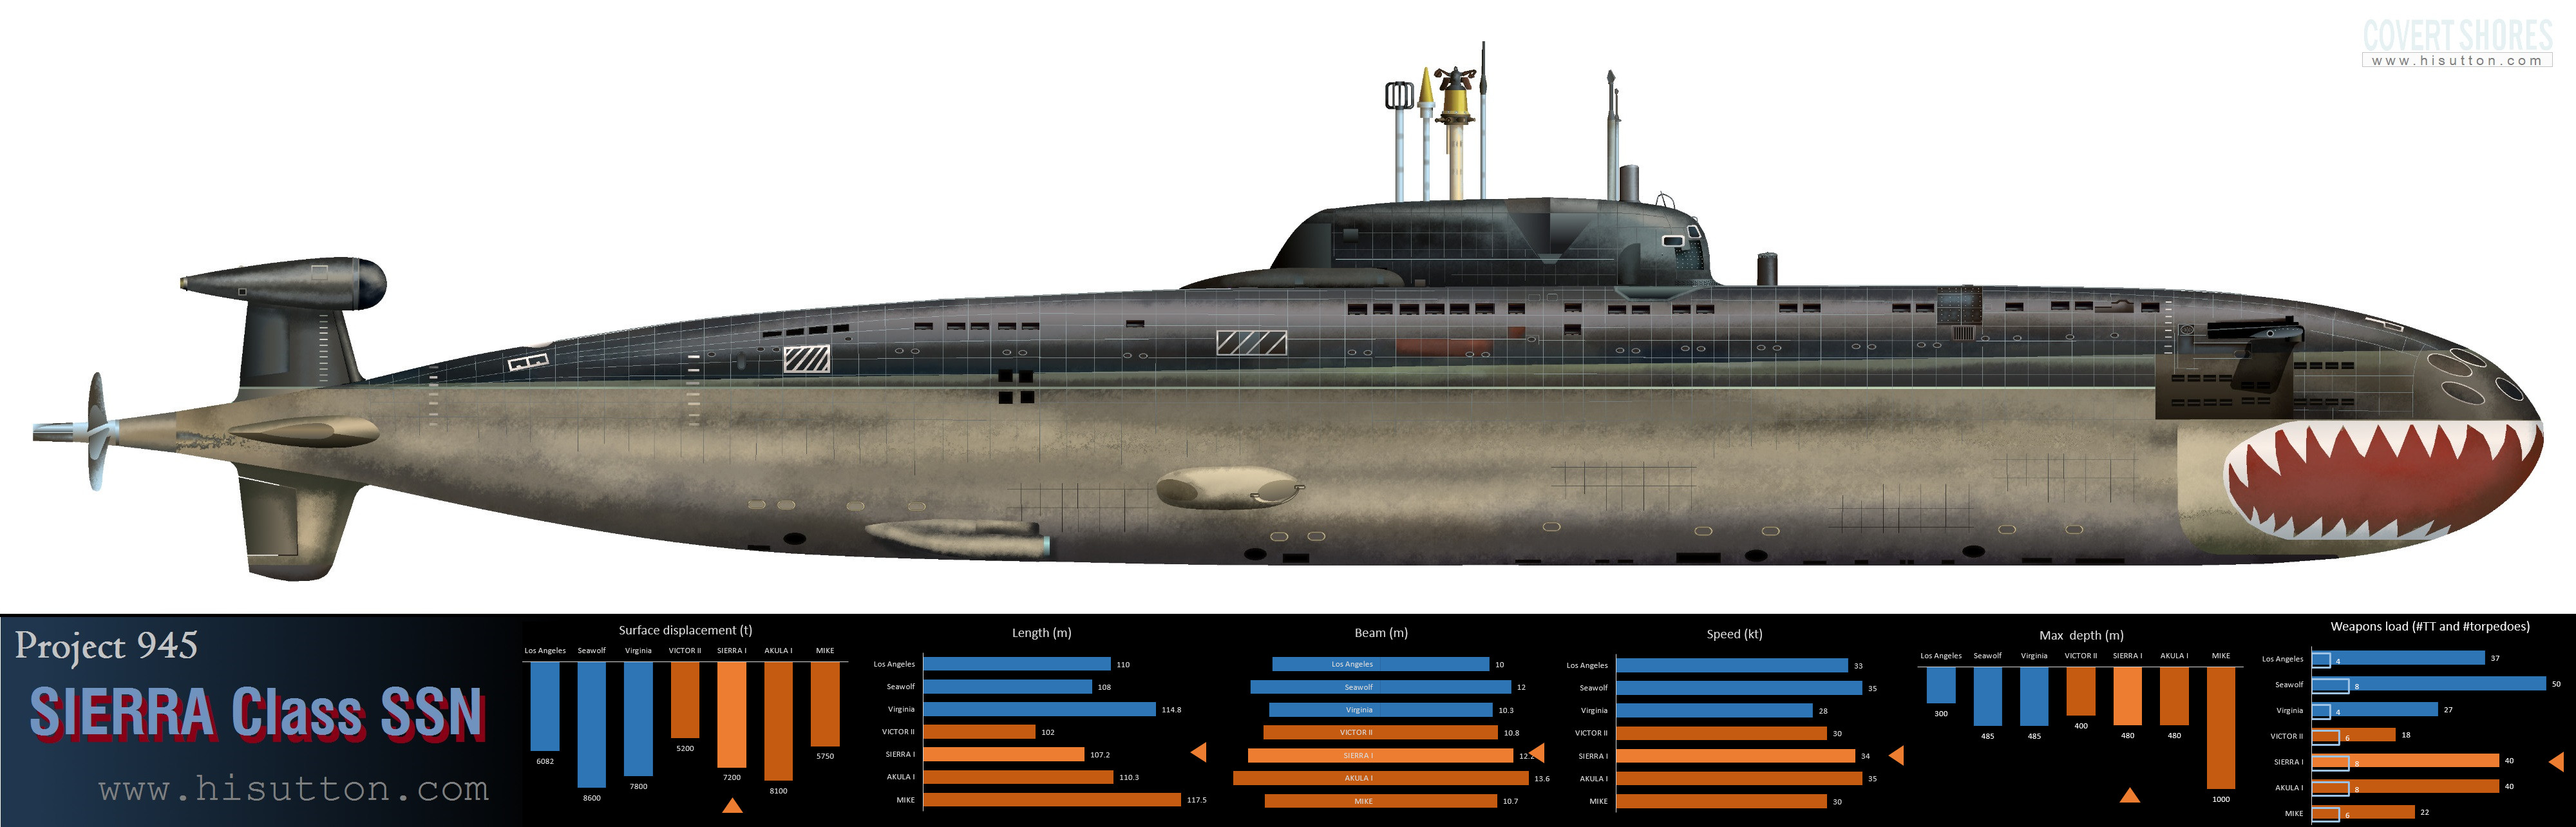 Image result for submarine hull meaning